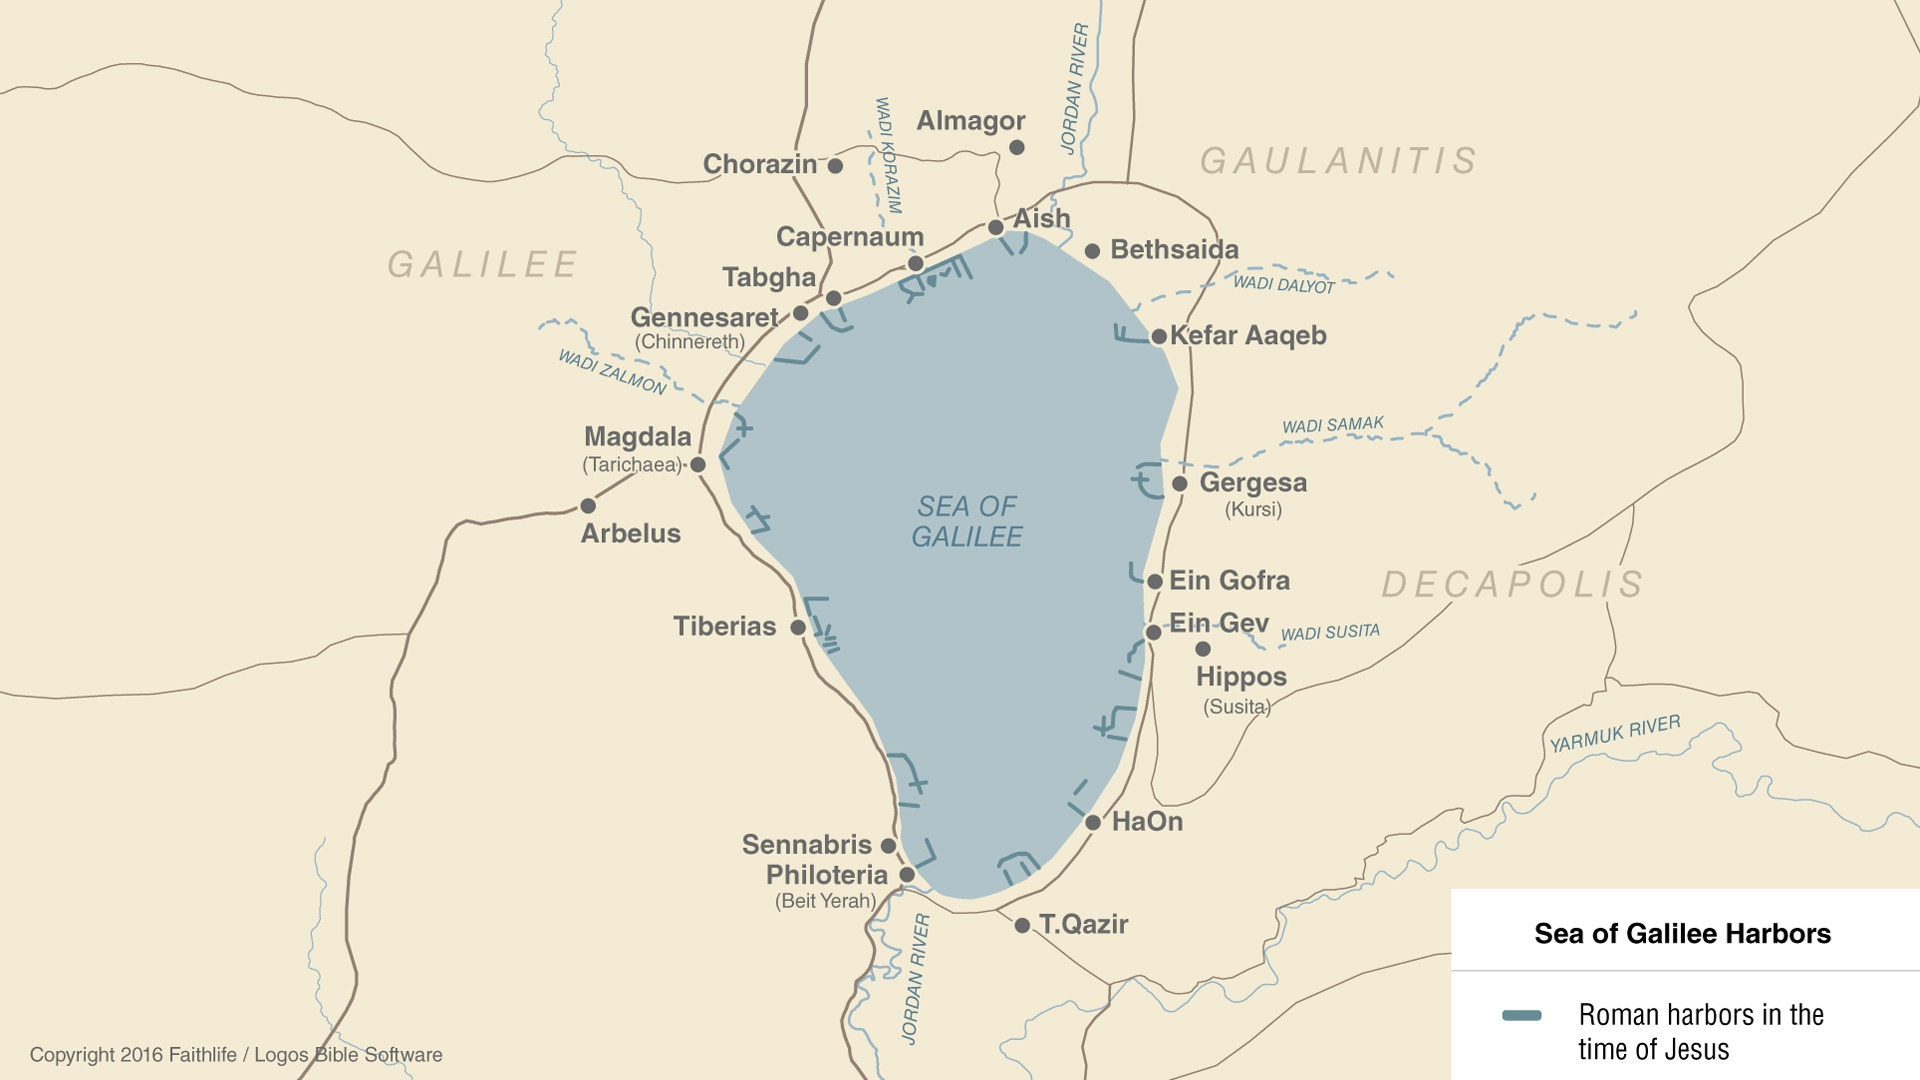 Ancient Harbors of the Sea of Galilee